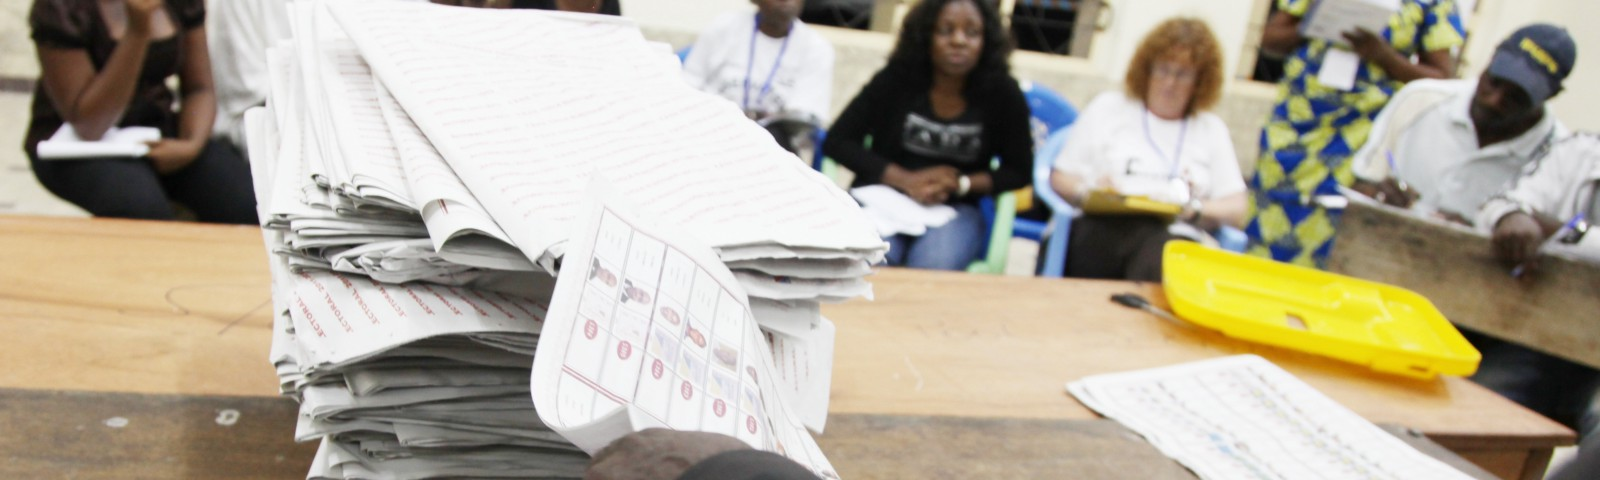 Person counting votes with observers watching in background